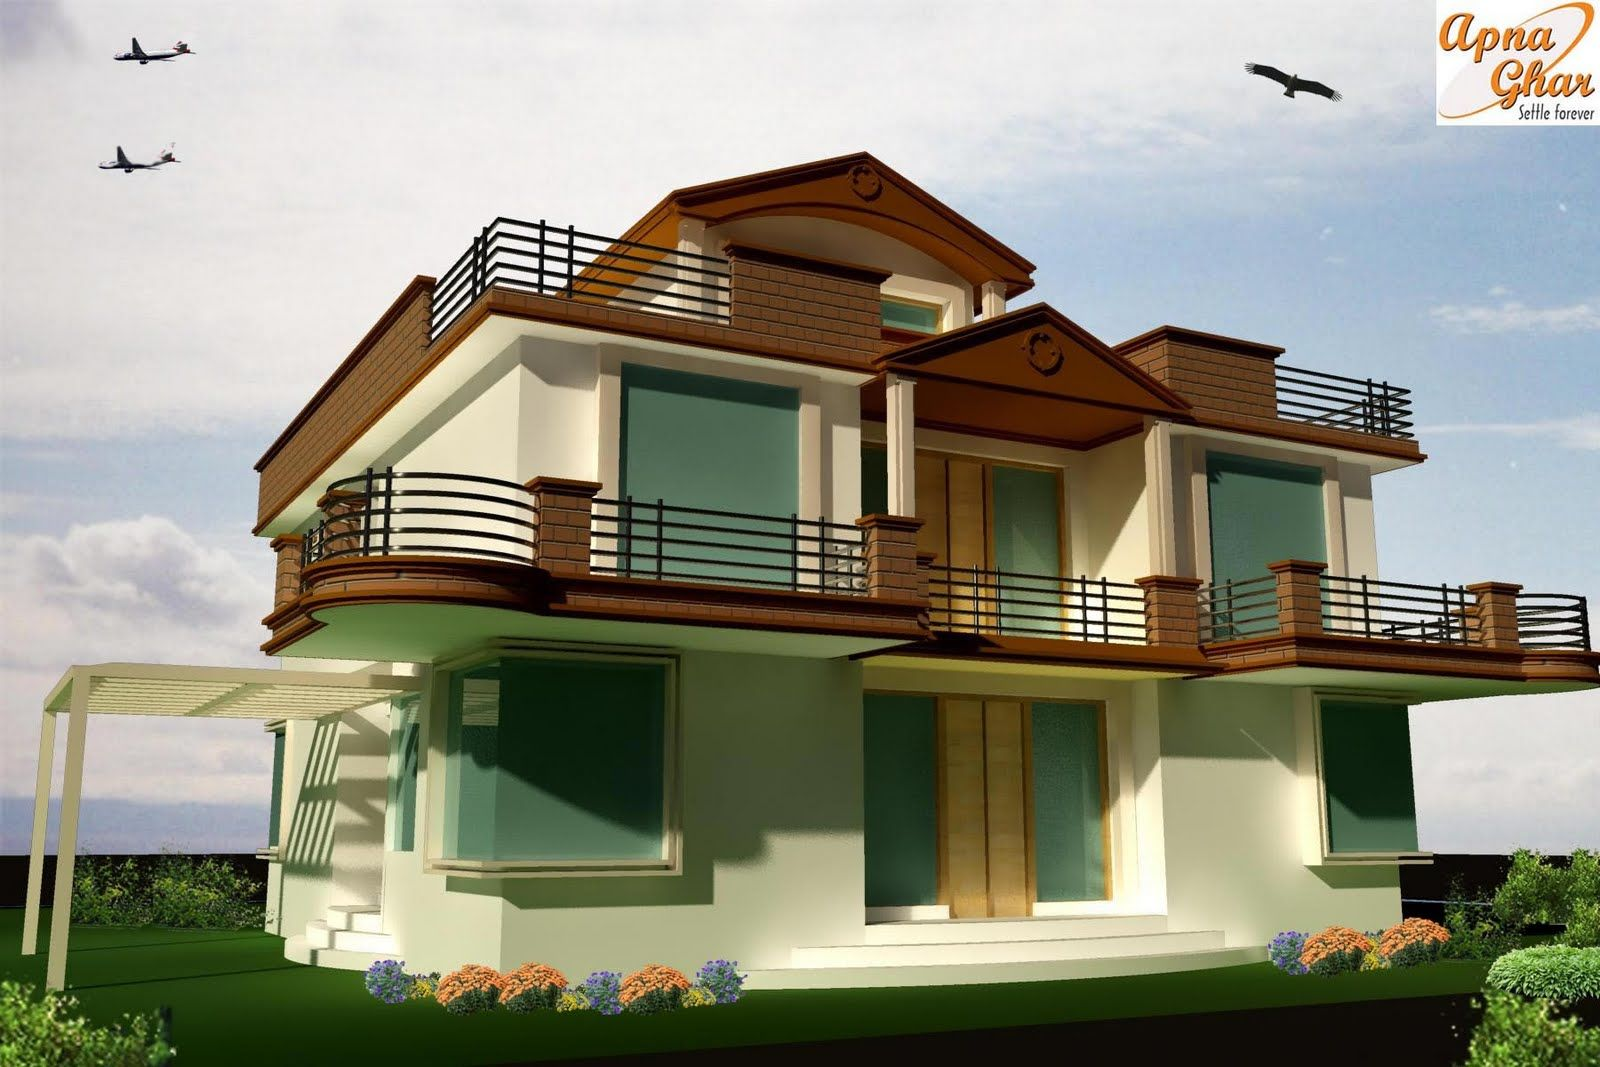 Architectural Designs Modern Architectural House Plans Architectural Custom